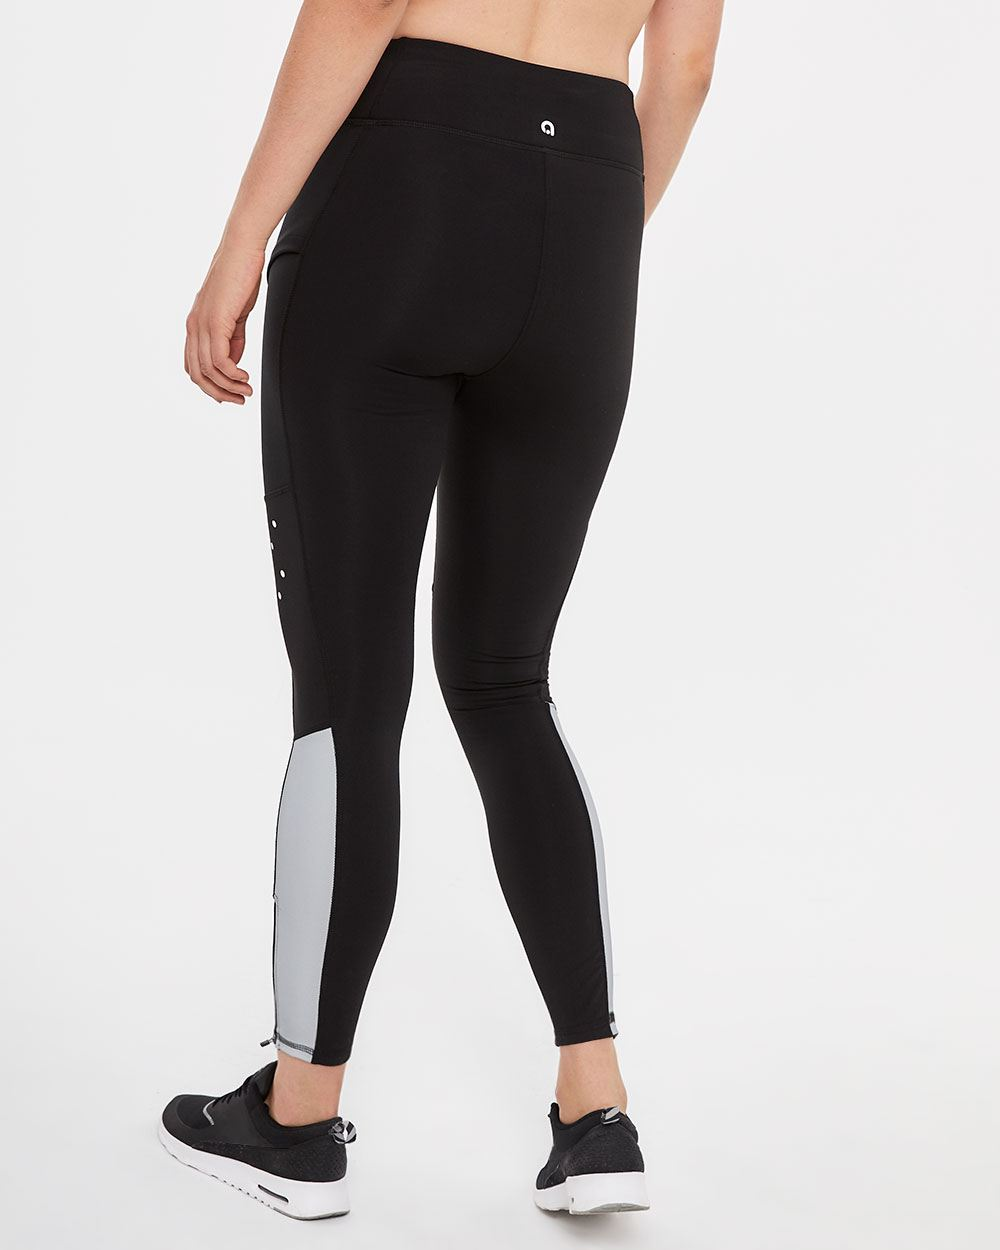 a4cd975560 Hyba Extreme Weather Leggings